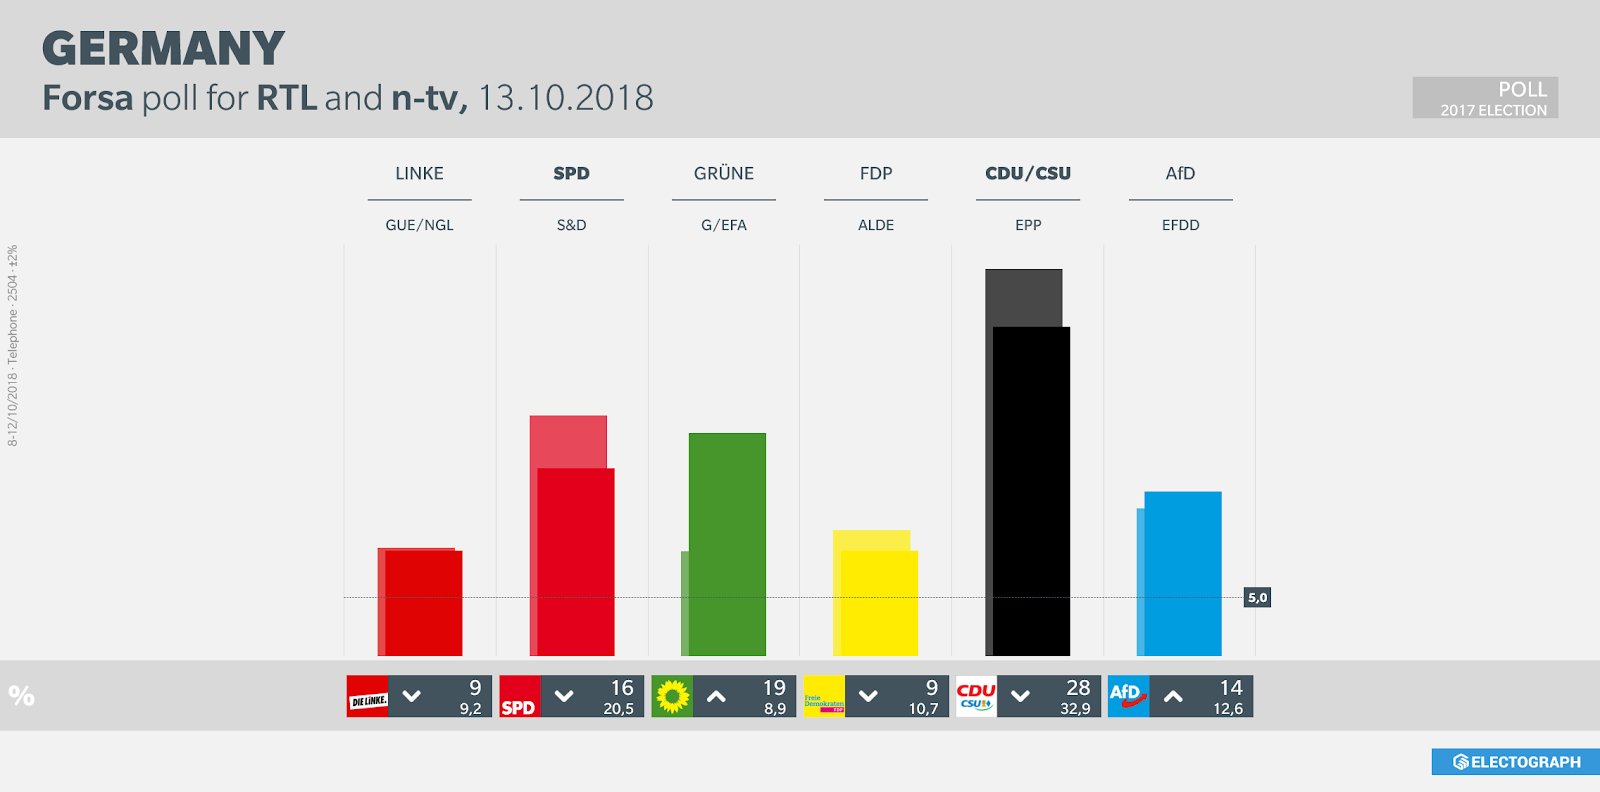 GERMANY: Forsa poll chart for RTL and n-tv, October 2018